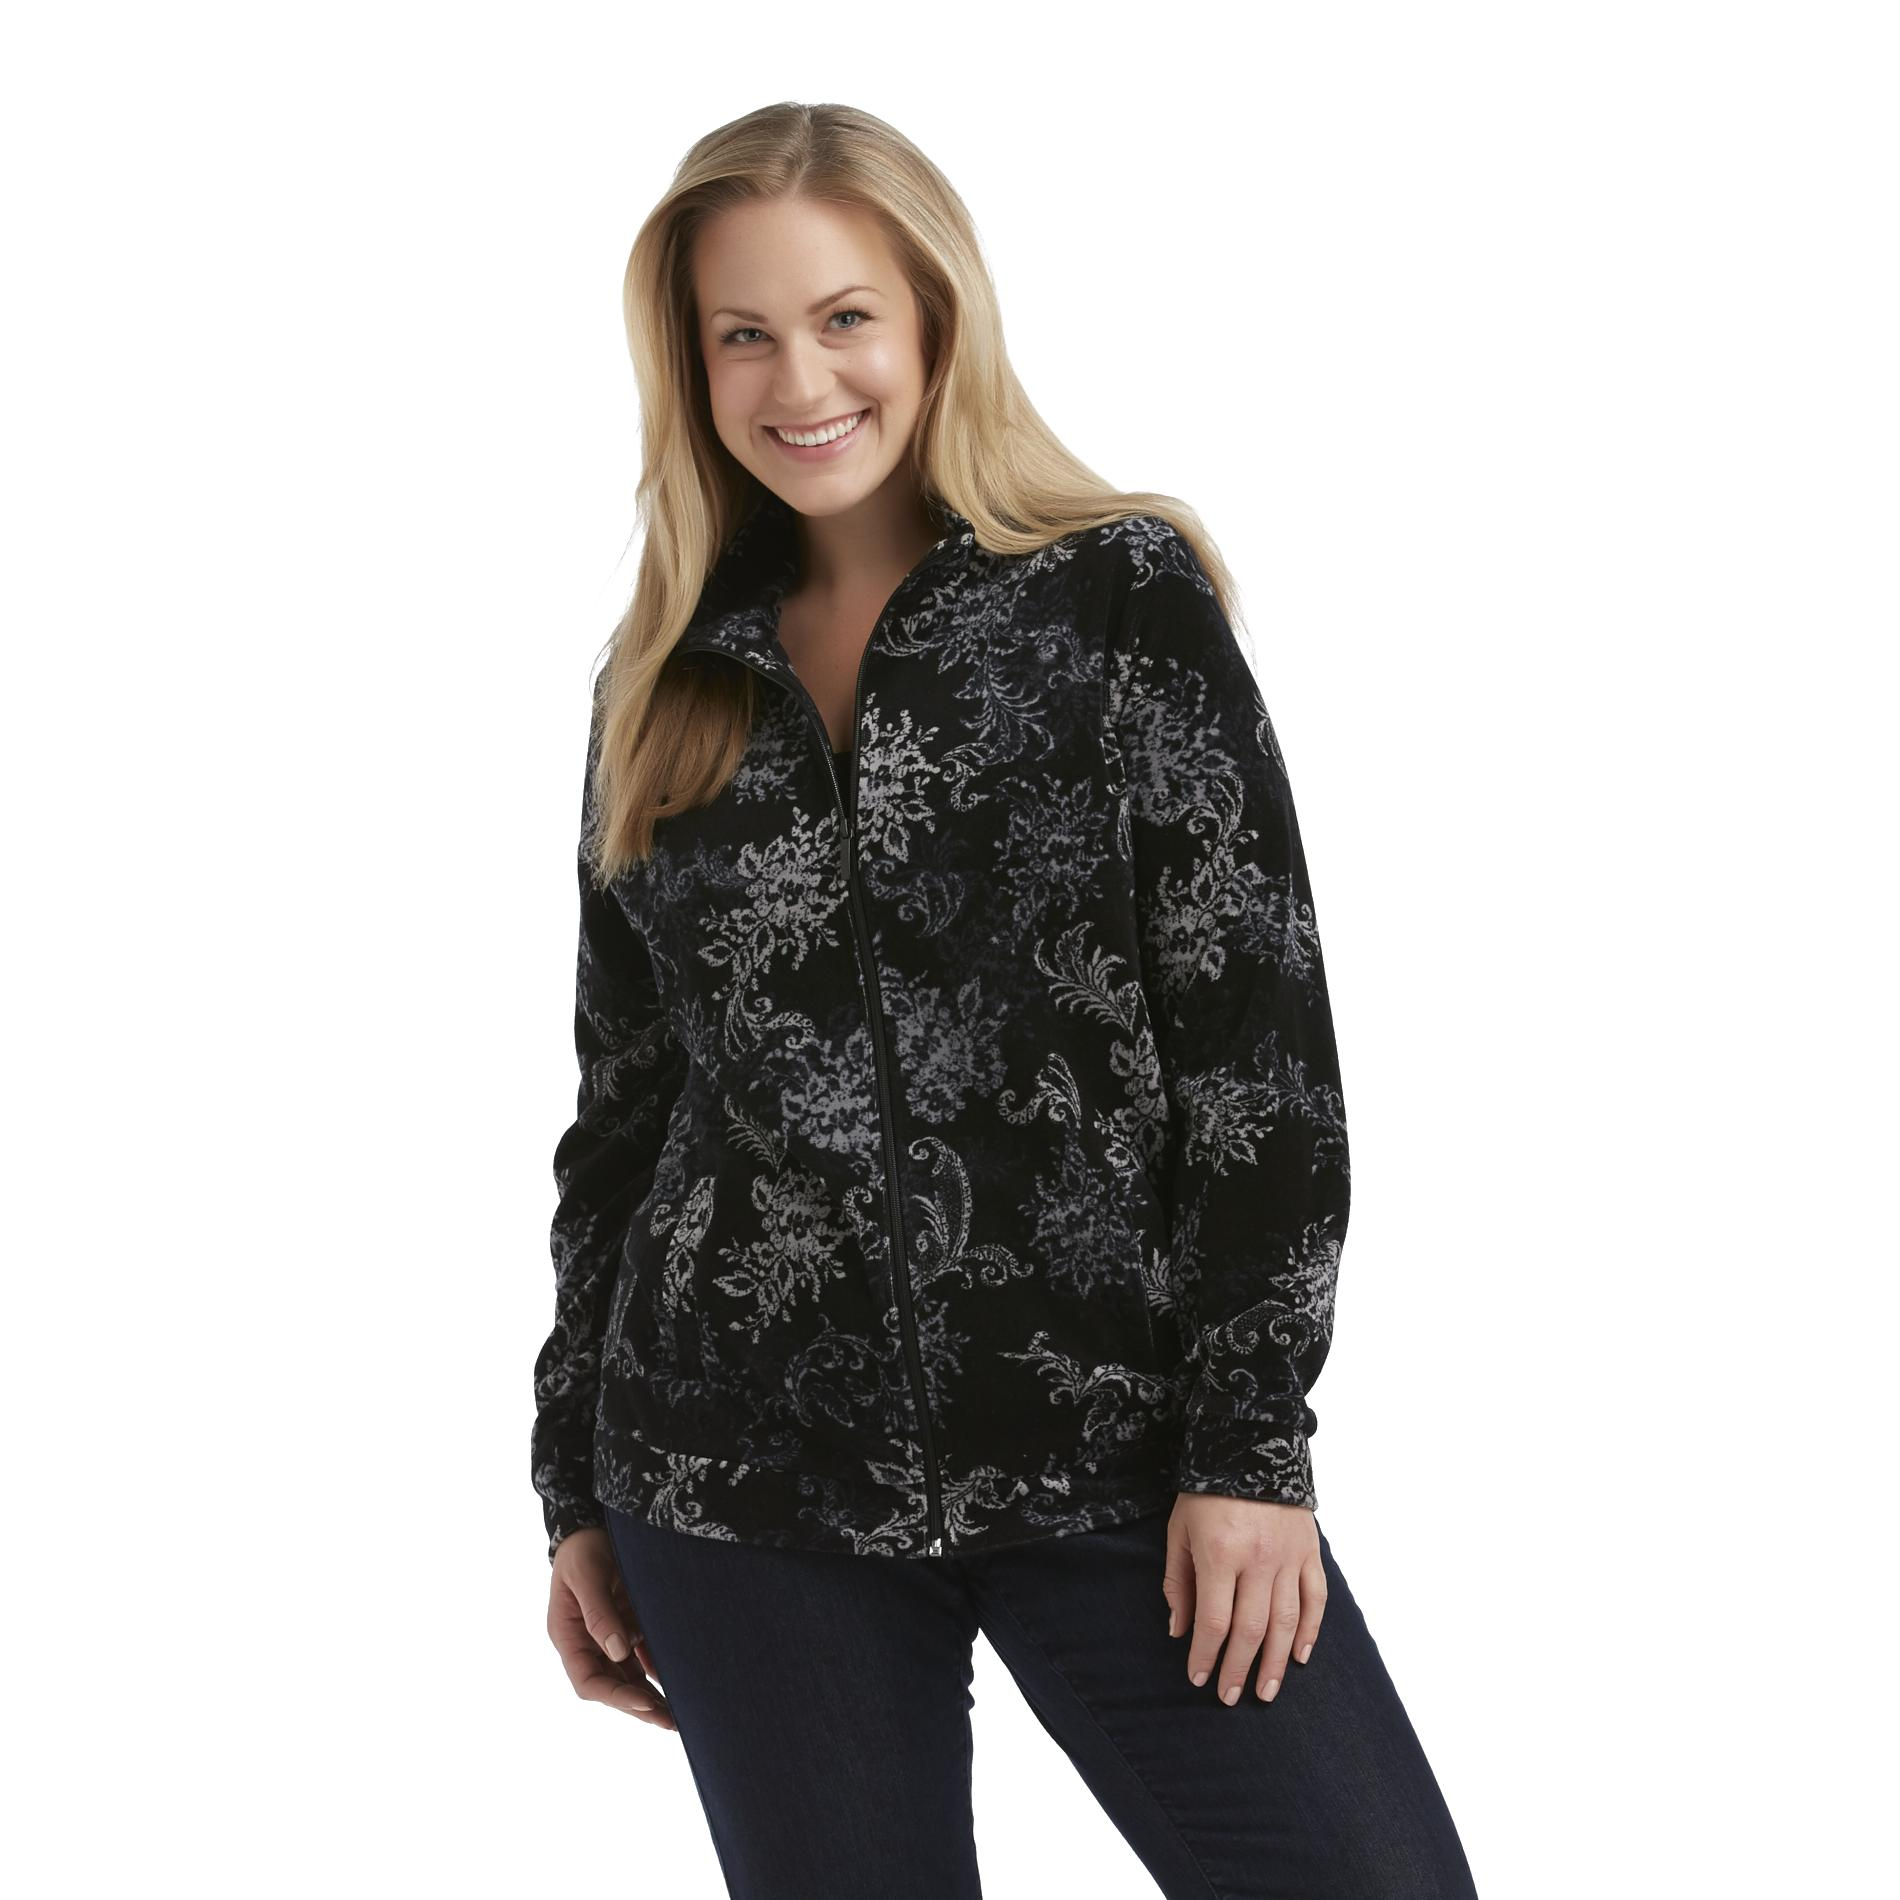 Basic Editions Women's Plus Mock Neck Jacket - Floral Print at Kmart.com